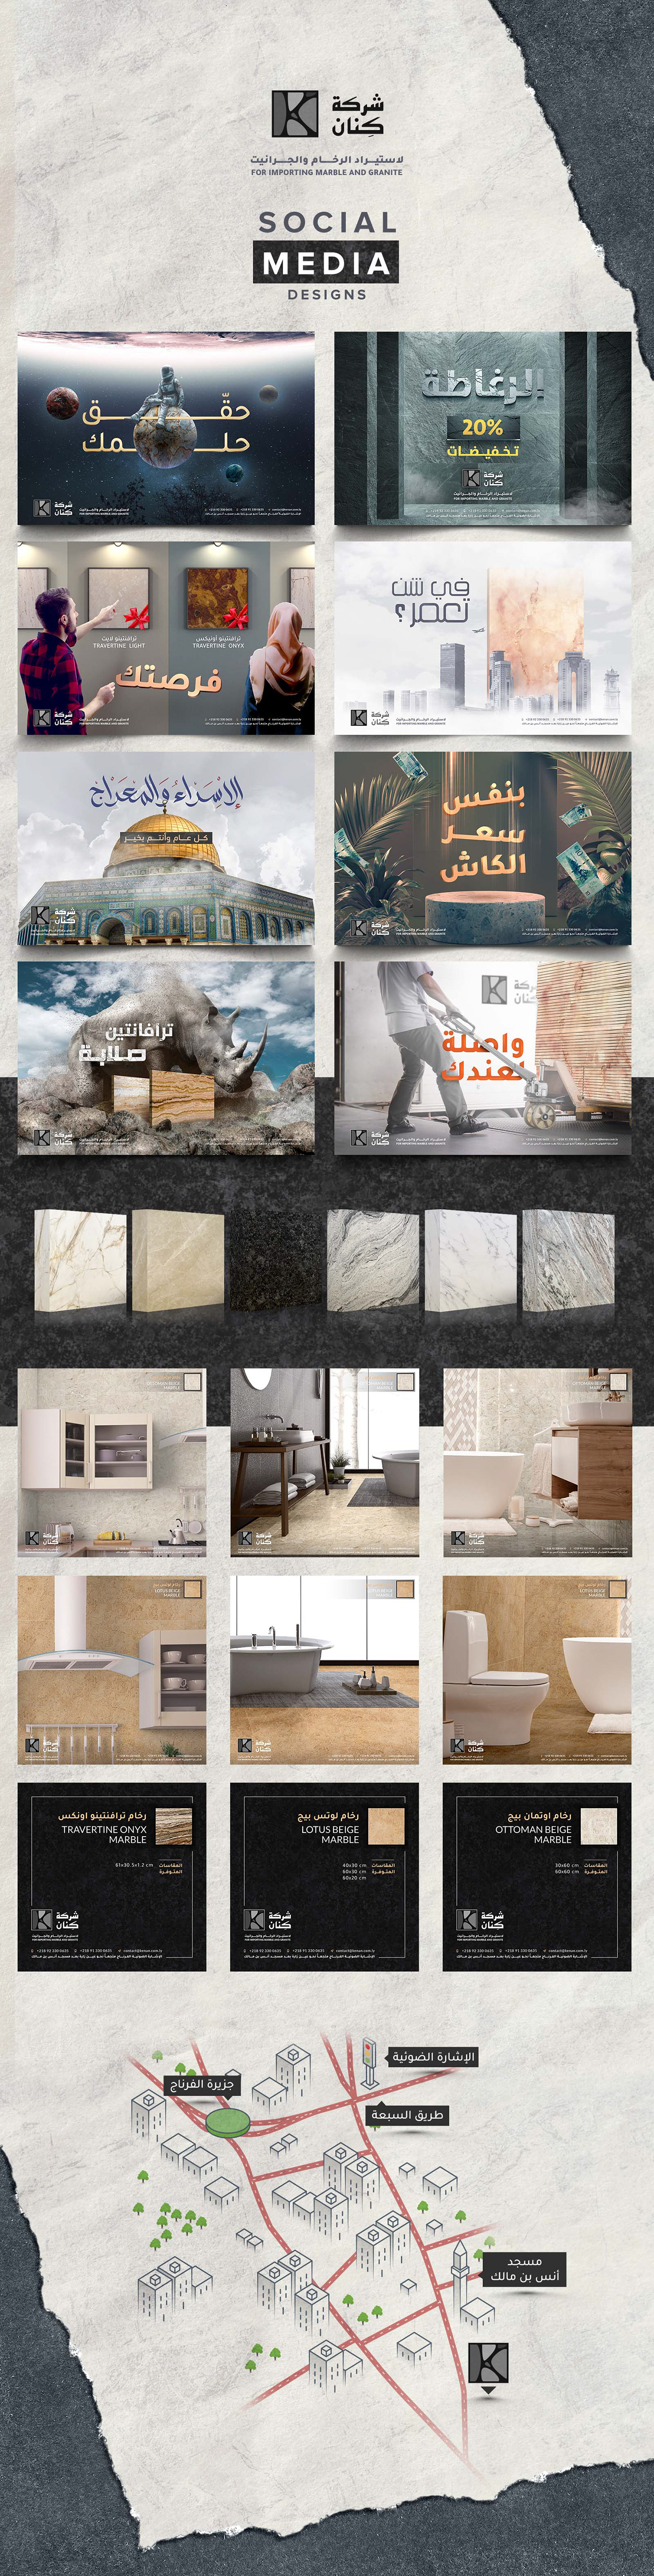 Social media designs were made for Kenan Company for importing marble & granite